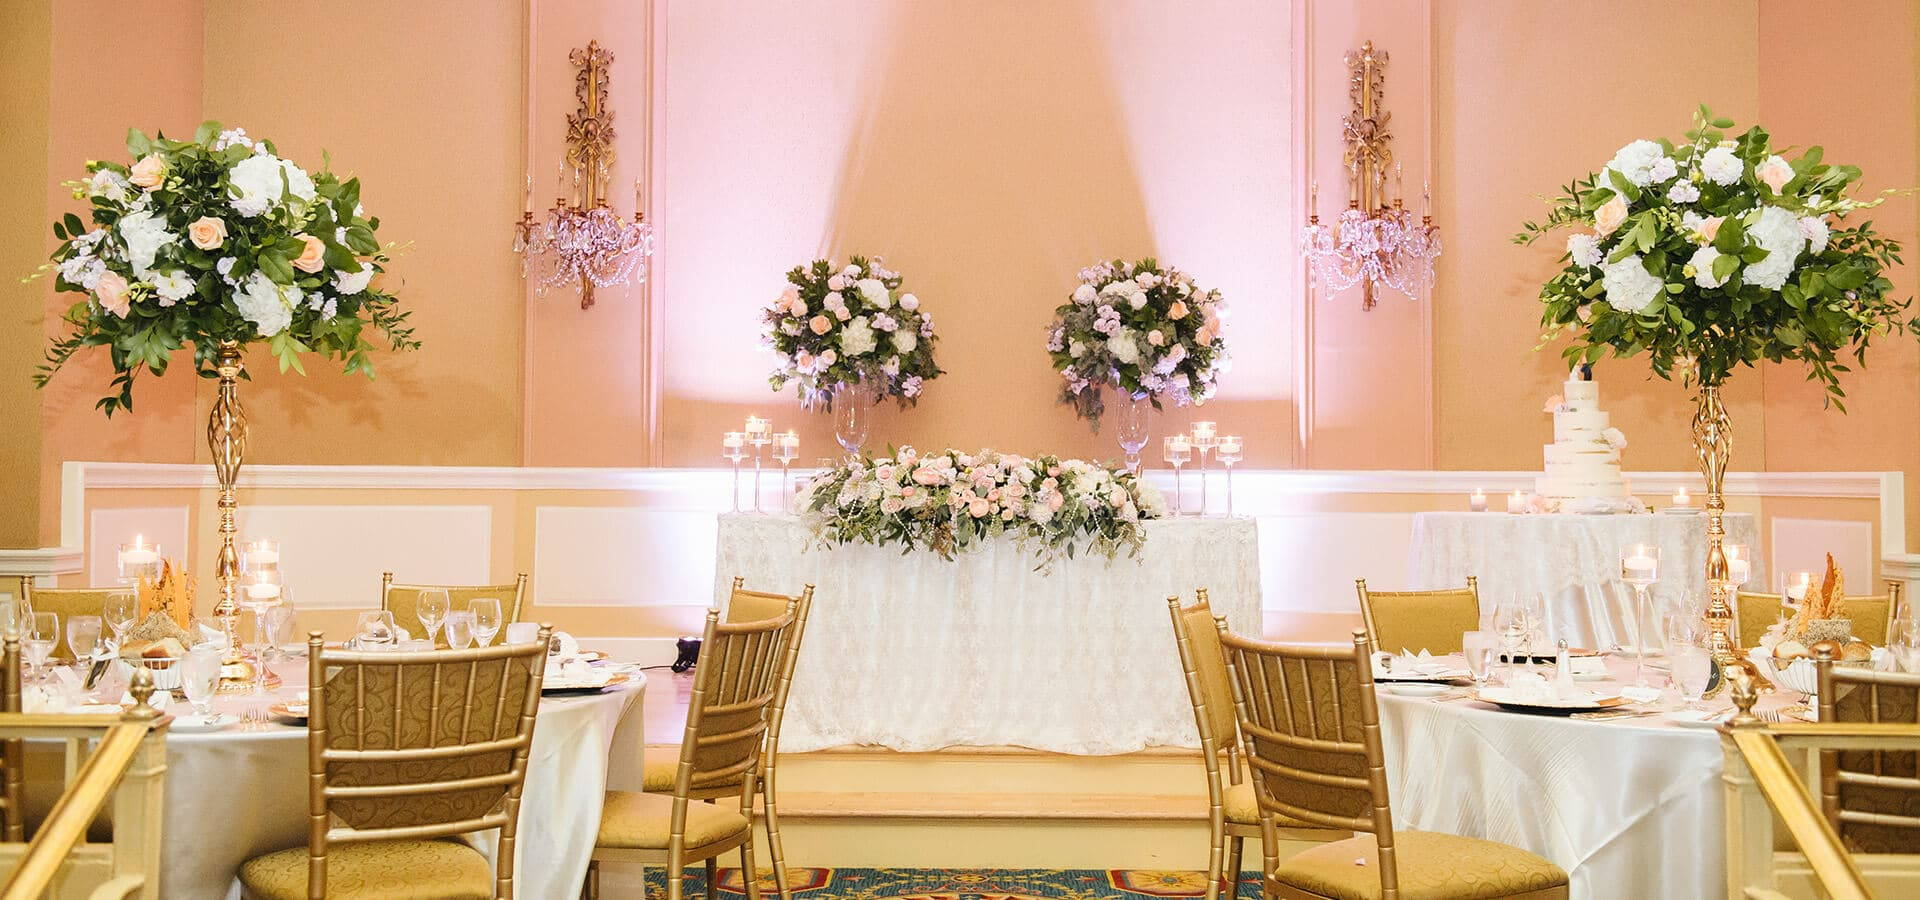 Hero image for Theresa and Michael's Classically Elegant Wedding at The Fairmont